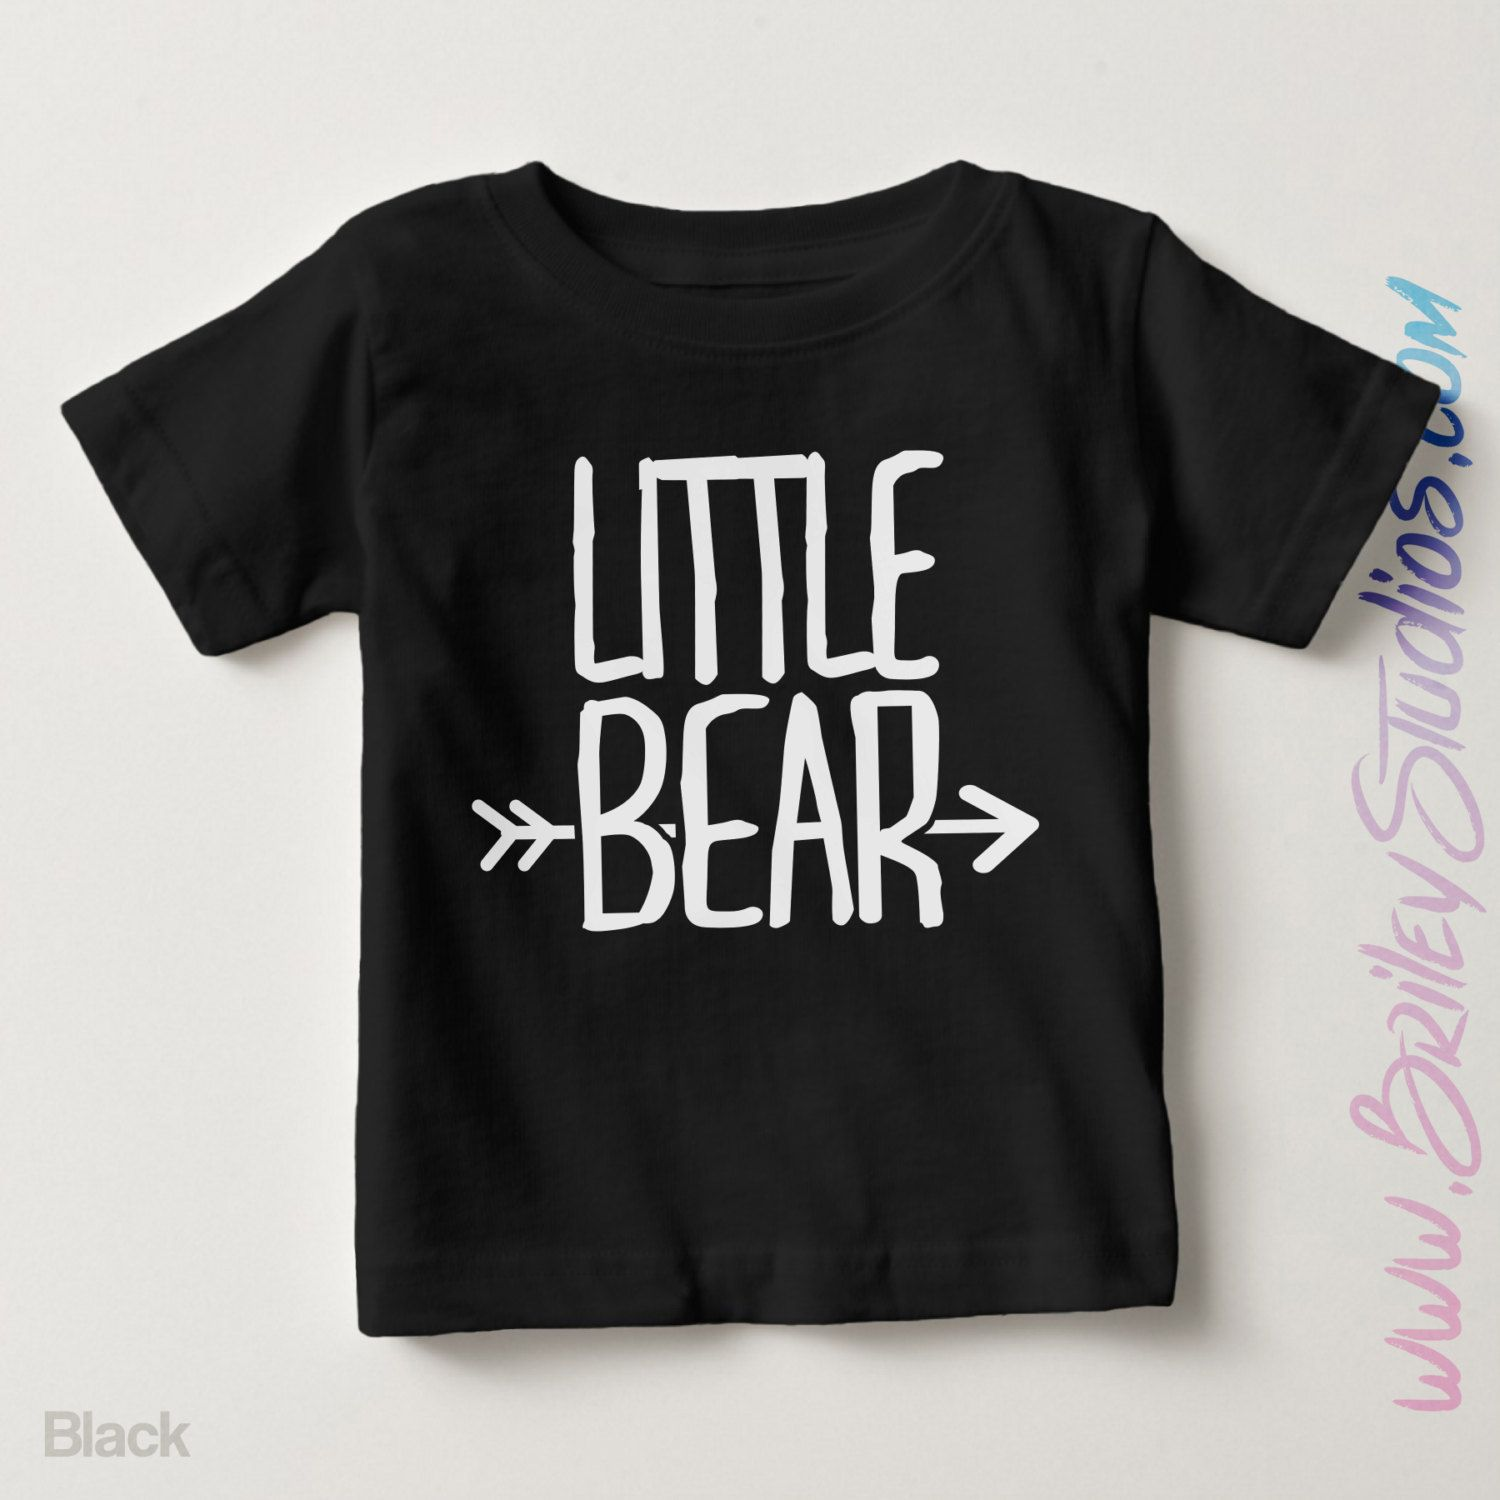 Little Bear Short Sleeve Toddler T-Shirt, Hipster Modern Kids Clothing, Personalized, Birthday Outfit, Little Explorer, Adventurer, 1st by BrileyStudios on Etsy